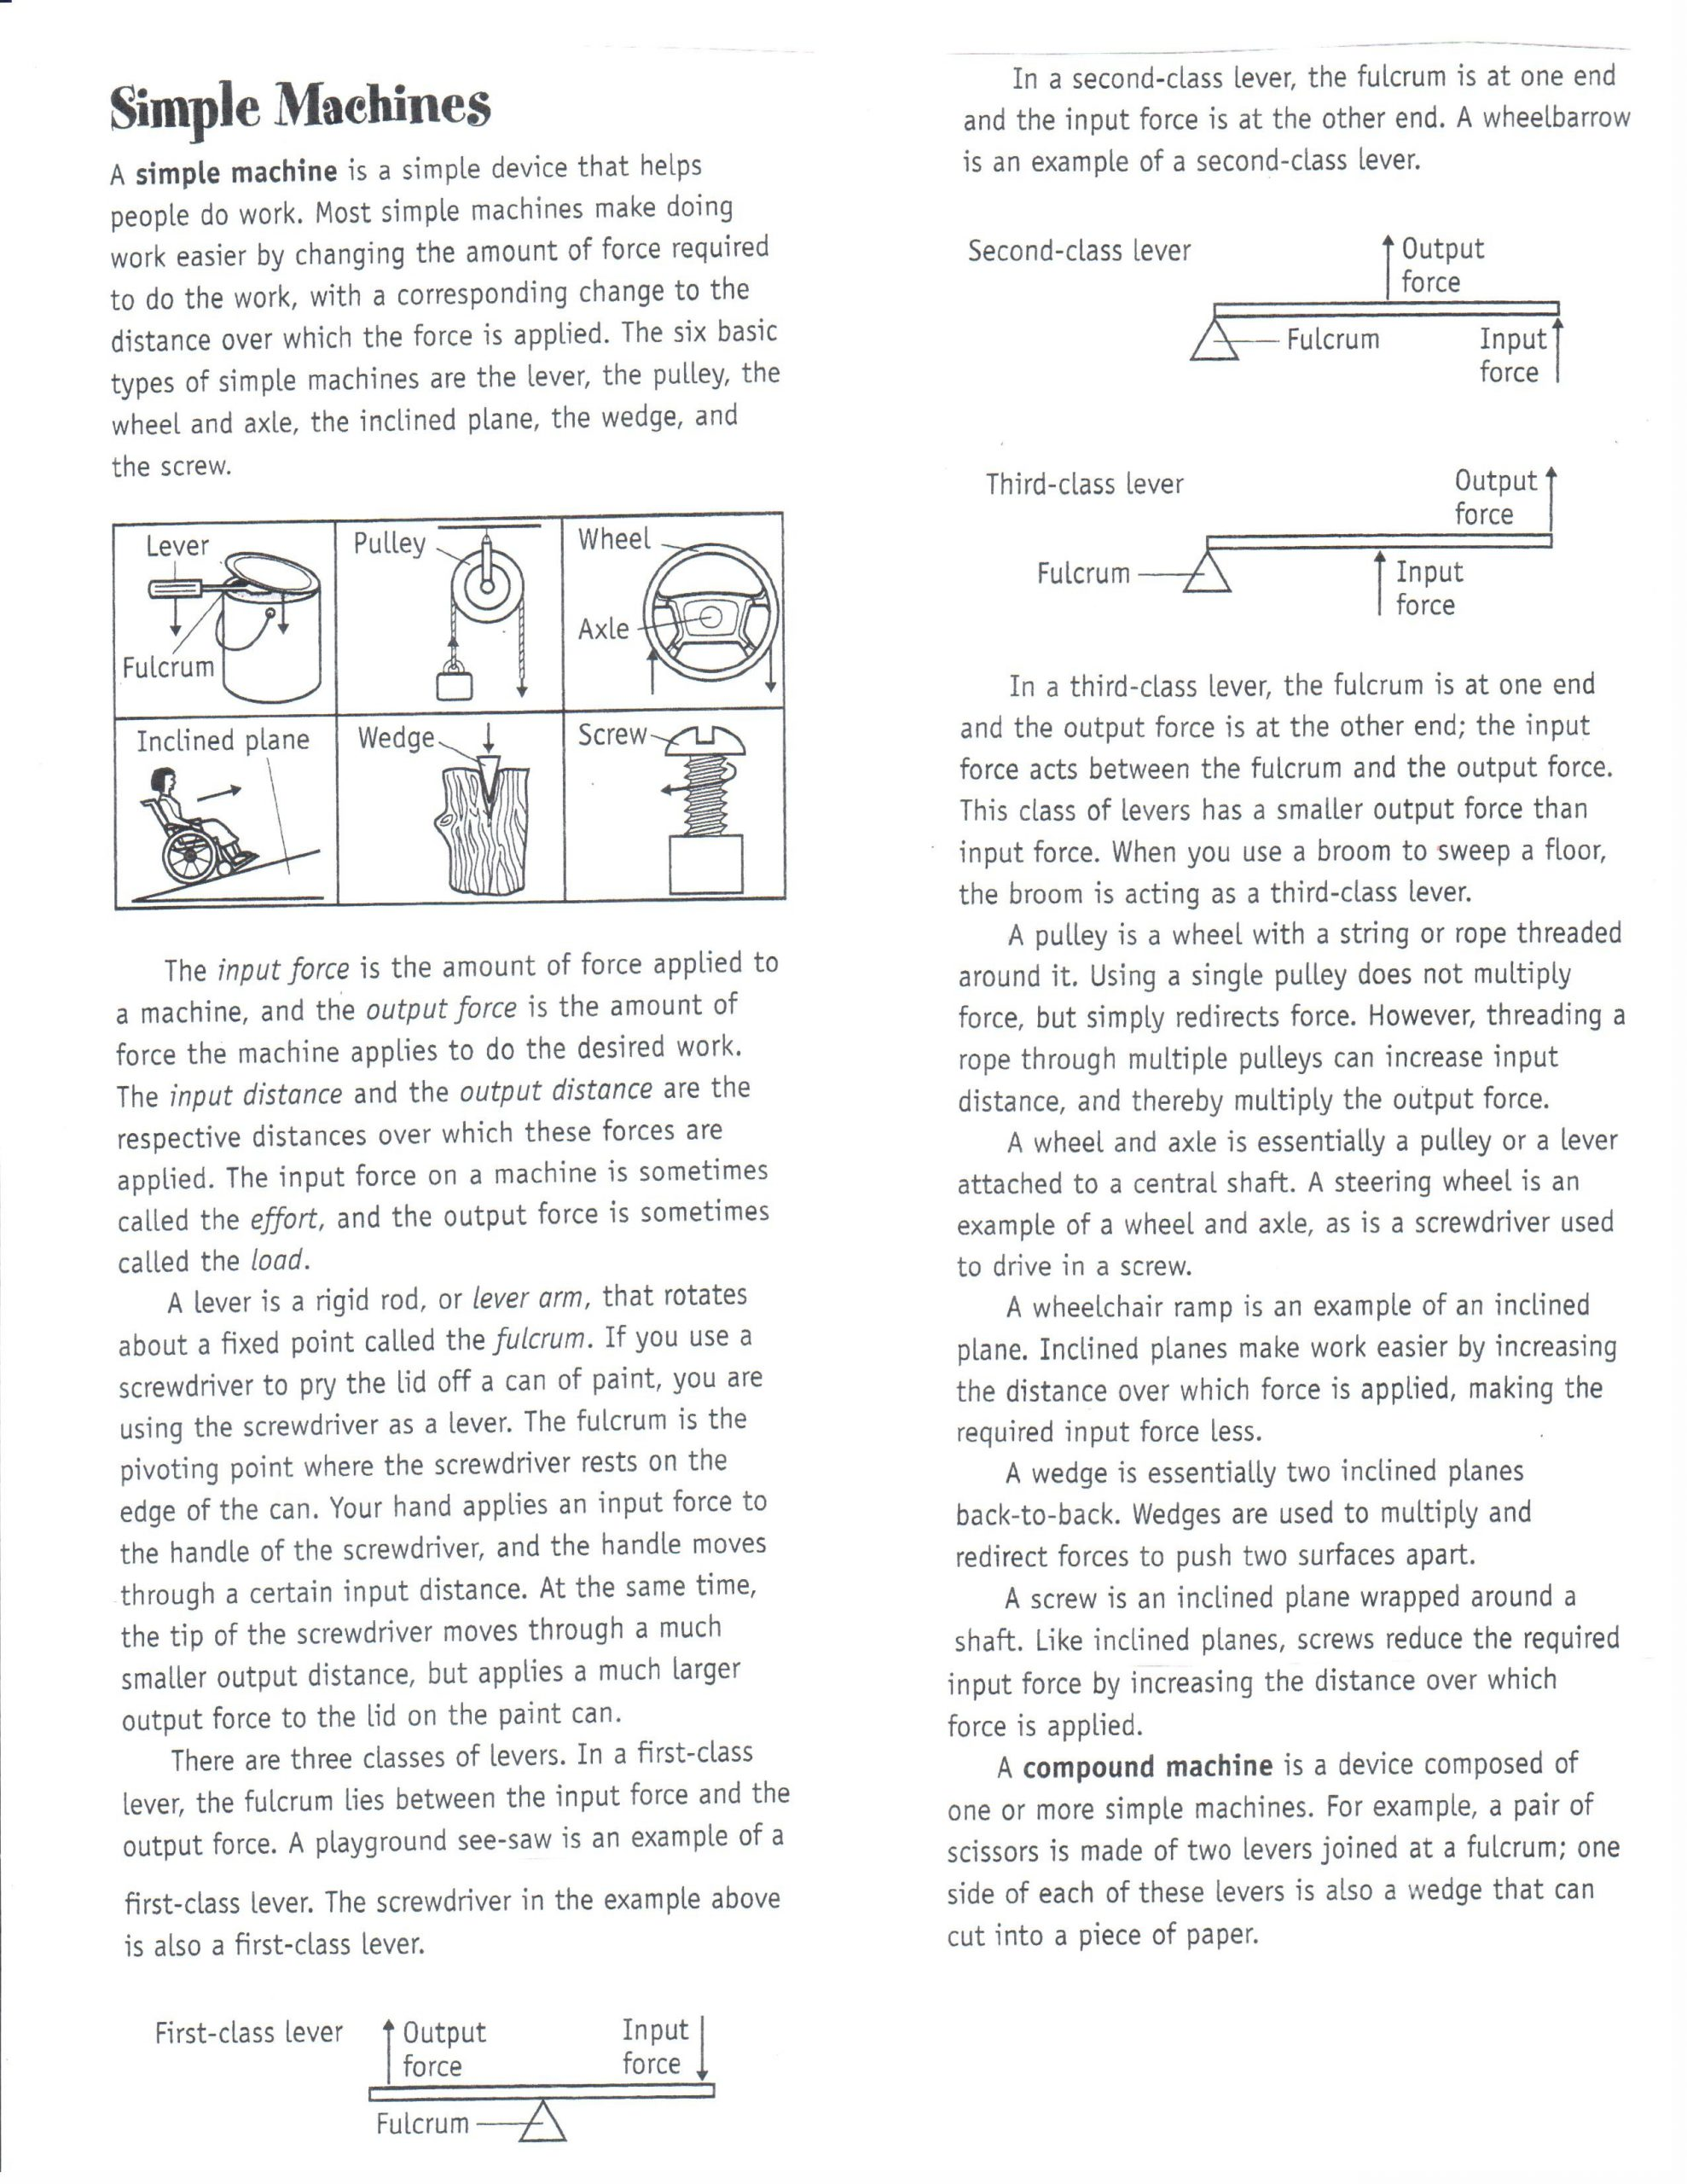 Simple Machine Worksheets Middle School Physical Science Dec 10 14